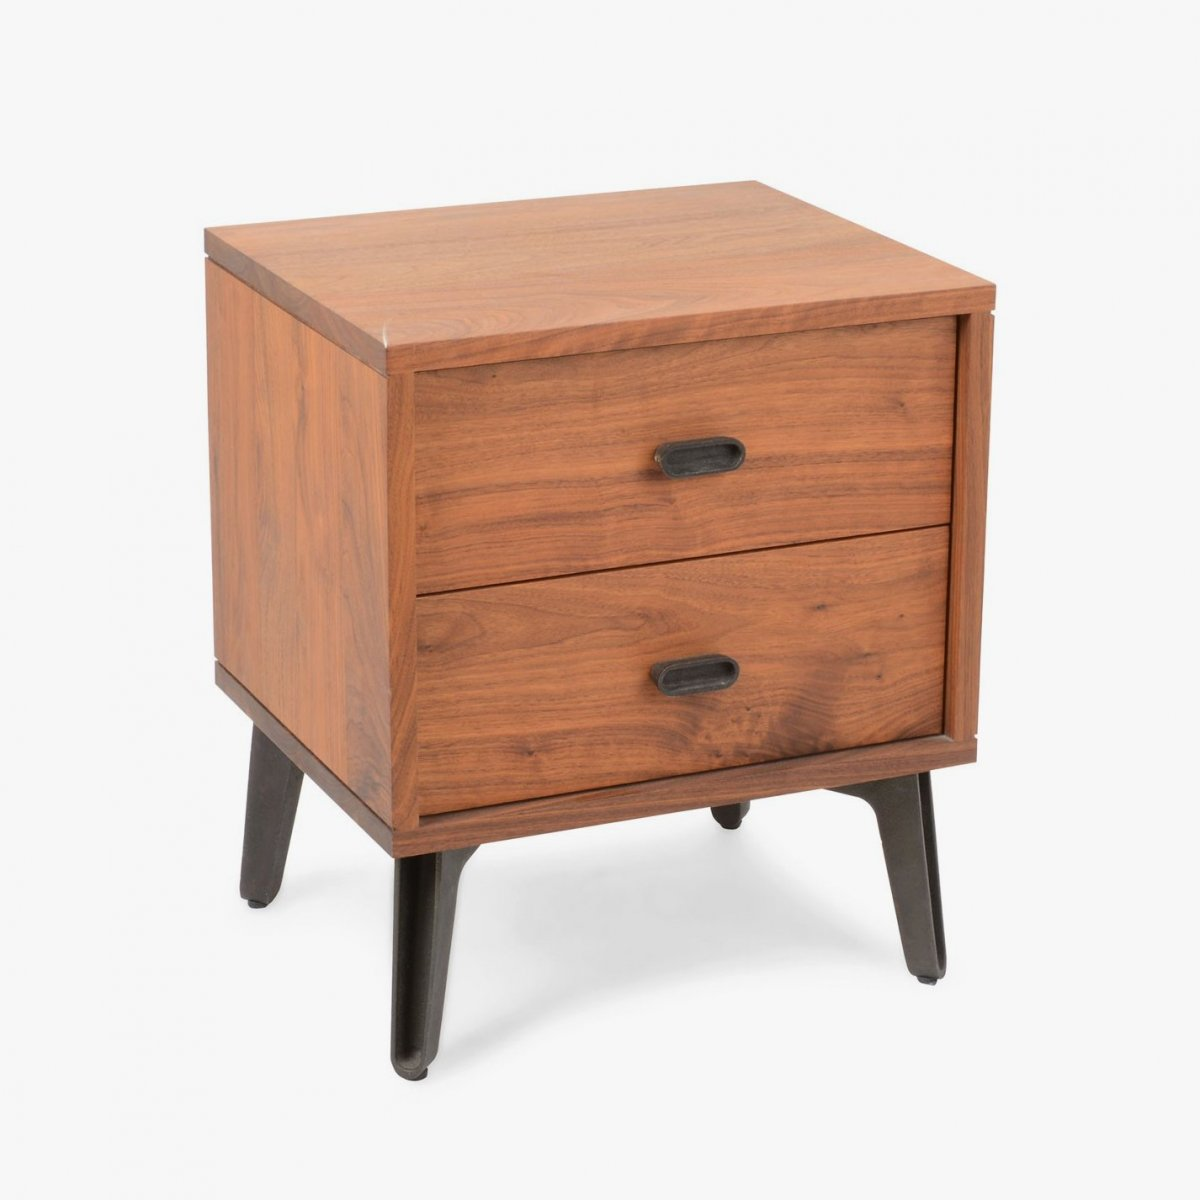 379 Mcqueen Bedside Chest, walnut.